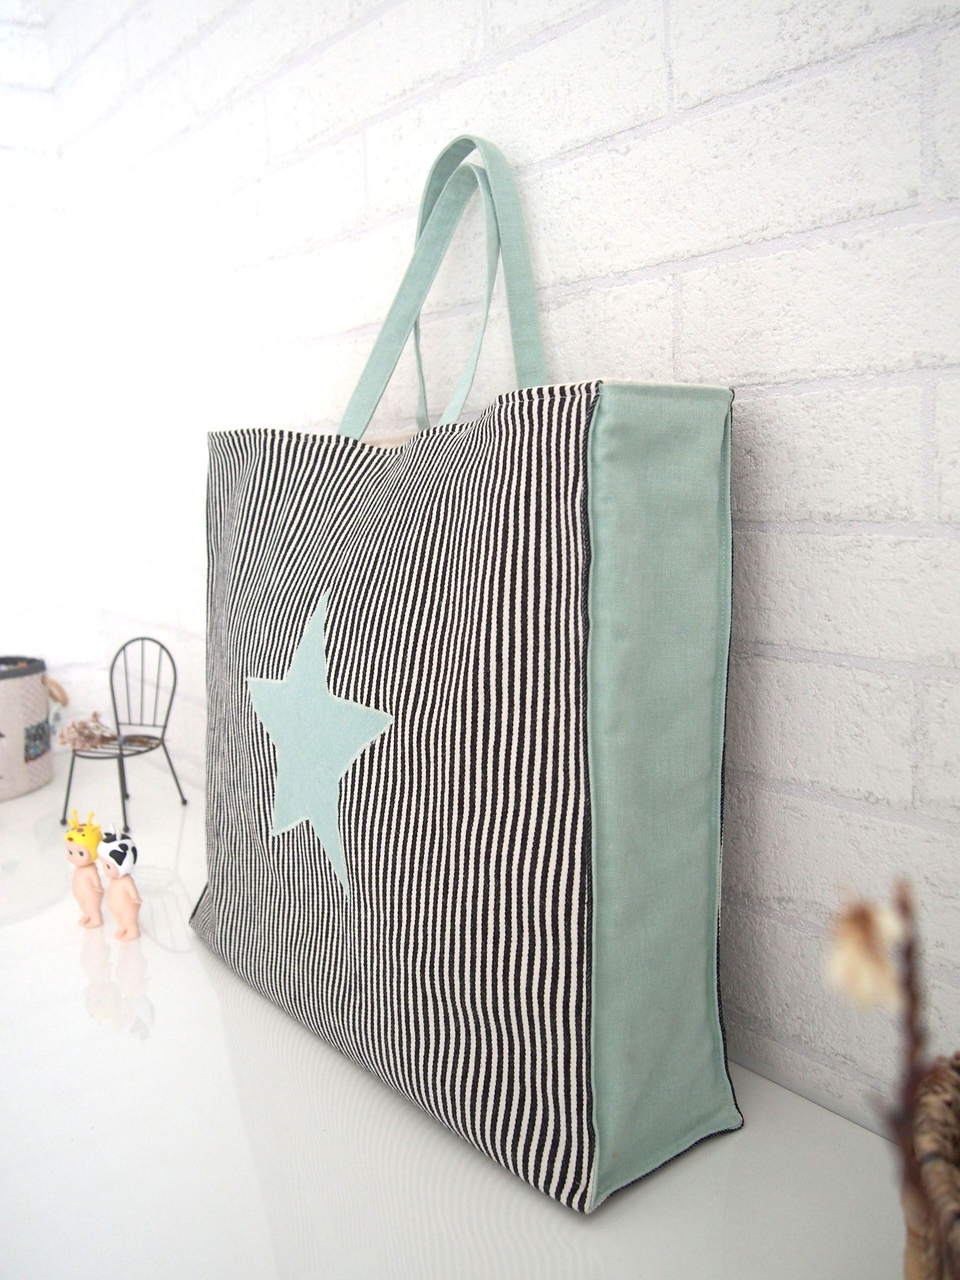 How To Sew a Tote Bag. Classic Tote Tutorial